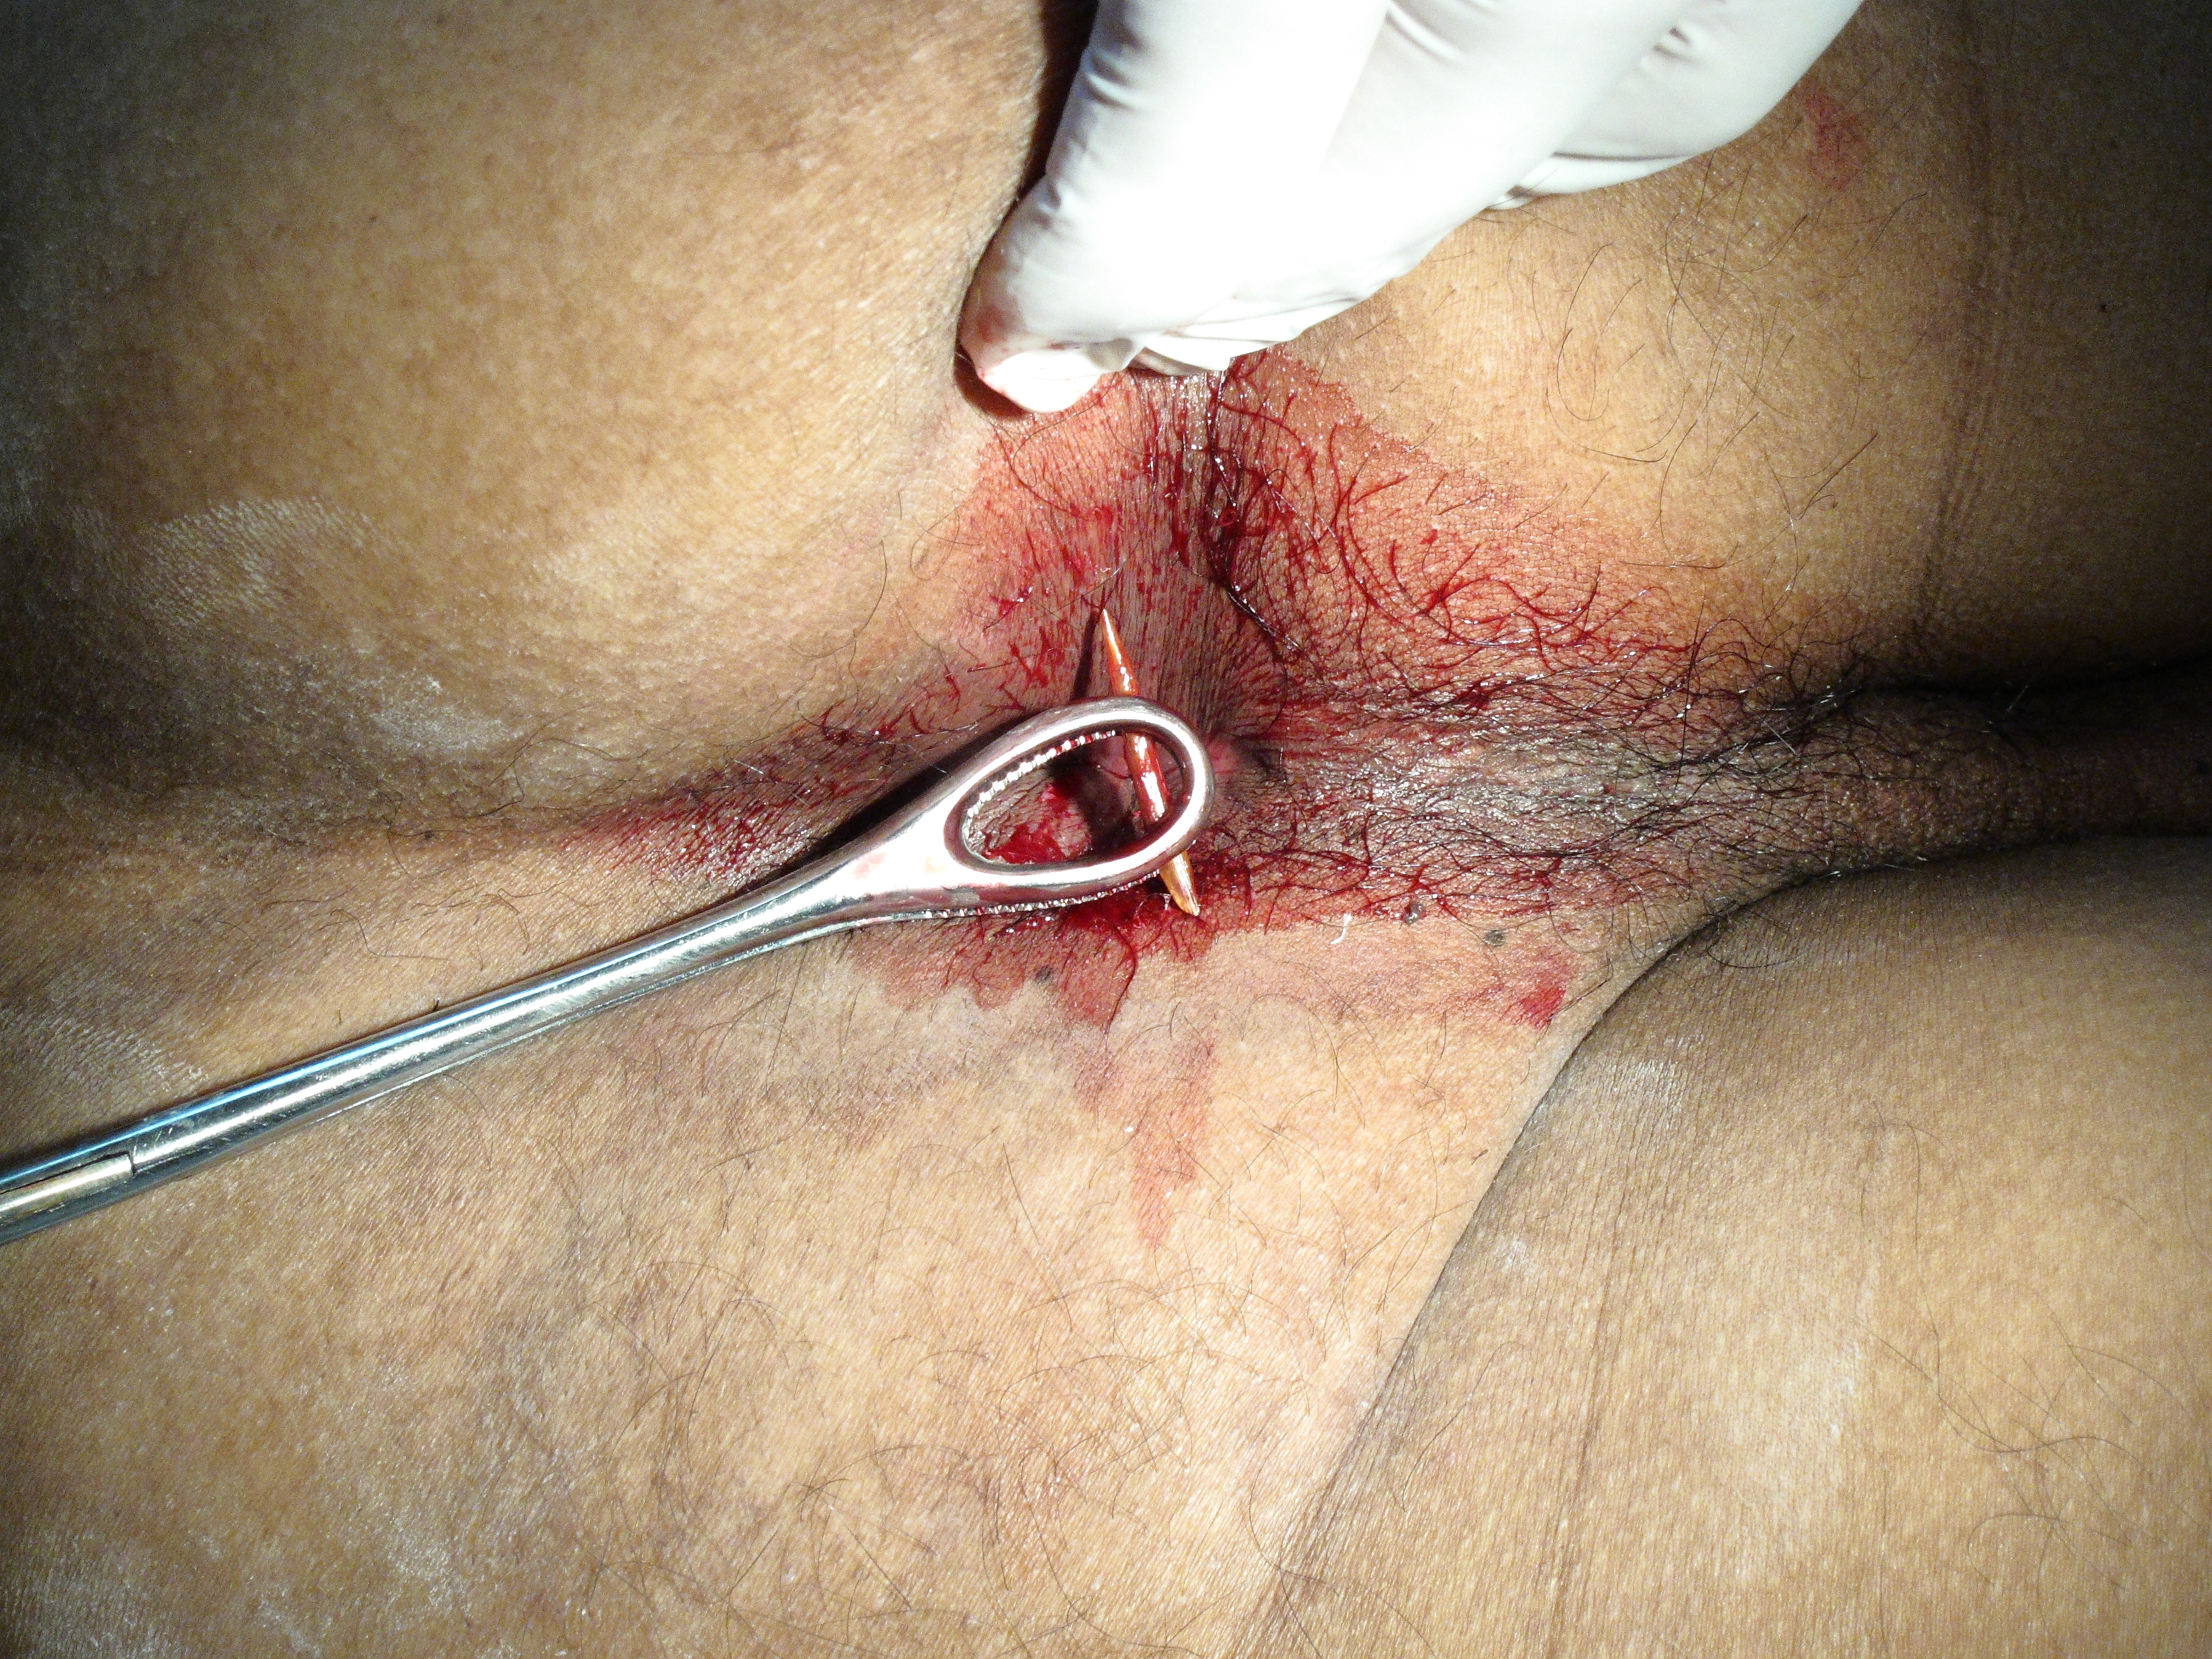 image Xxl cavernous anal speculum gape and fisting